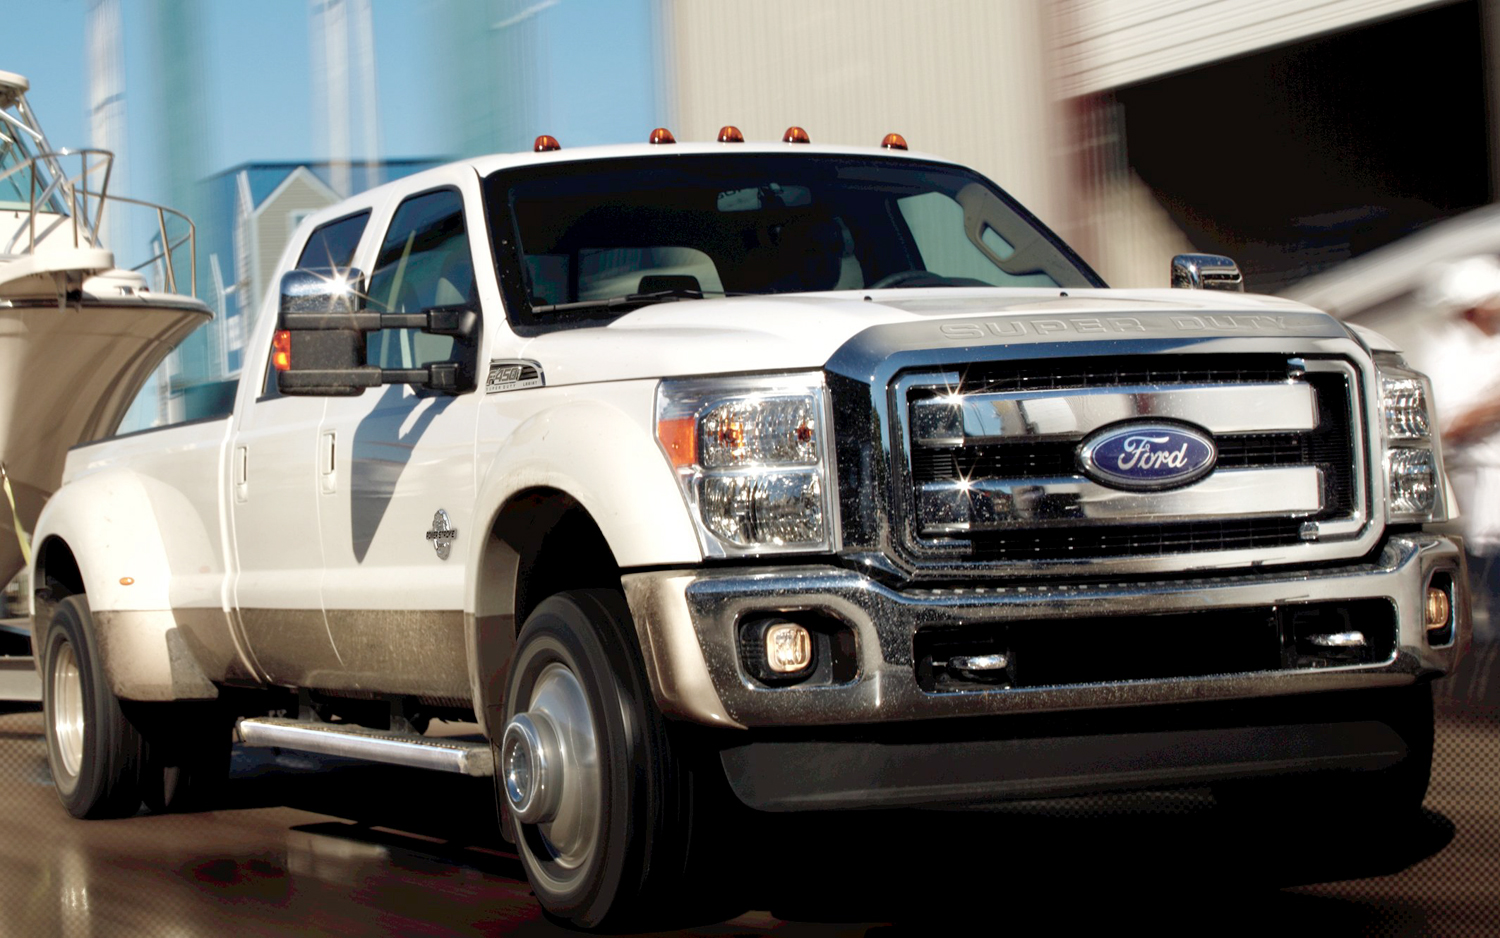 Ford F-450 Super Duty #8